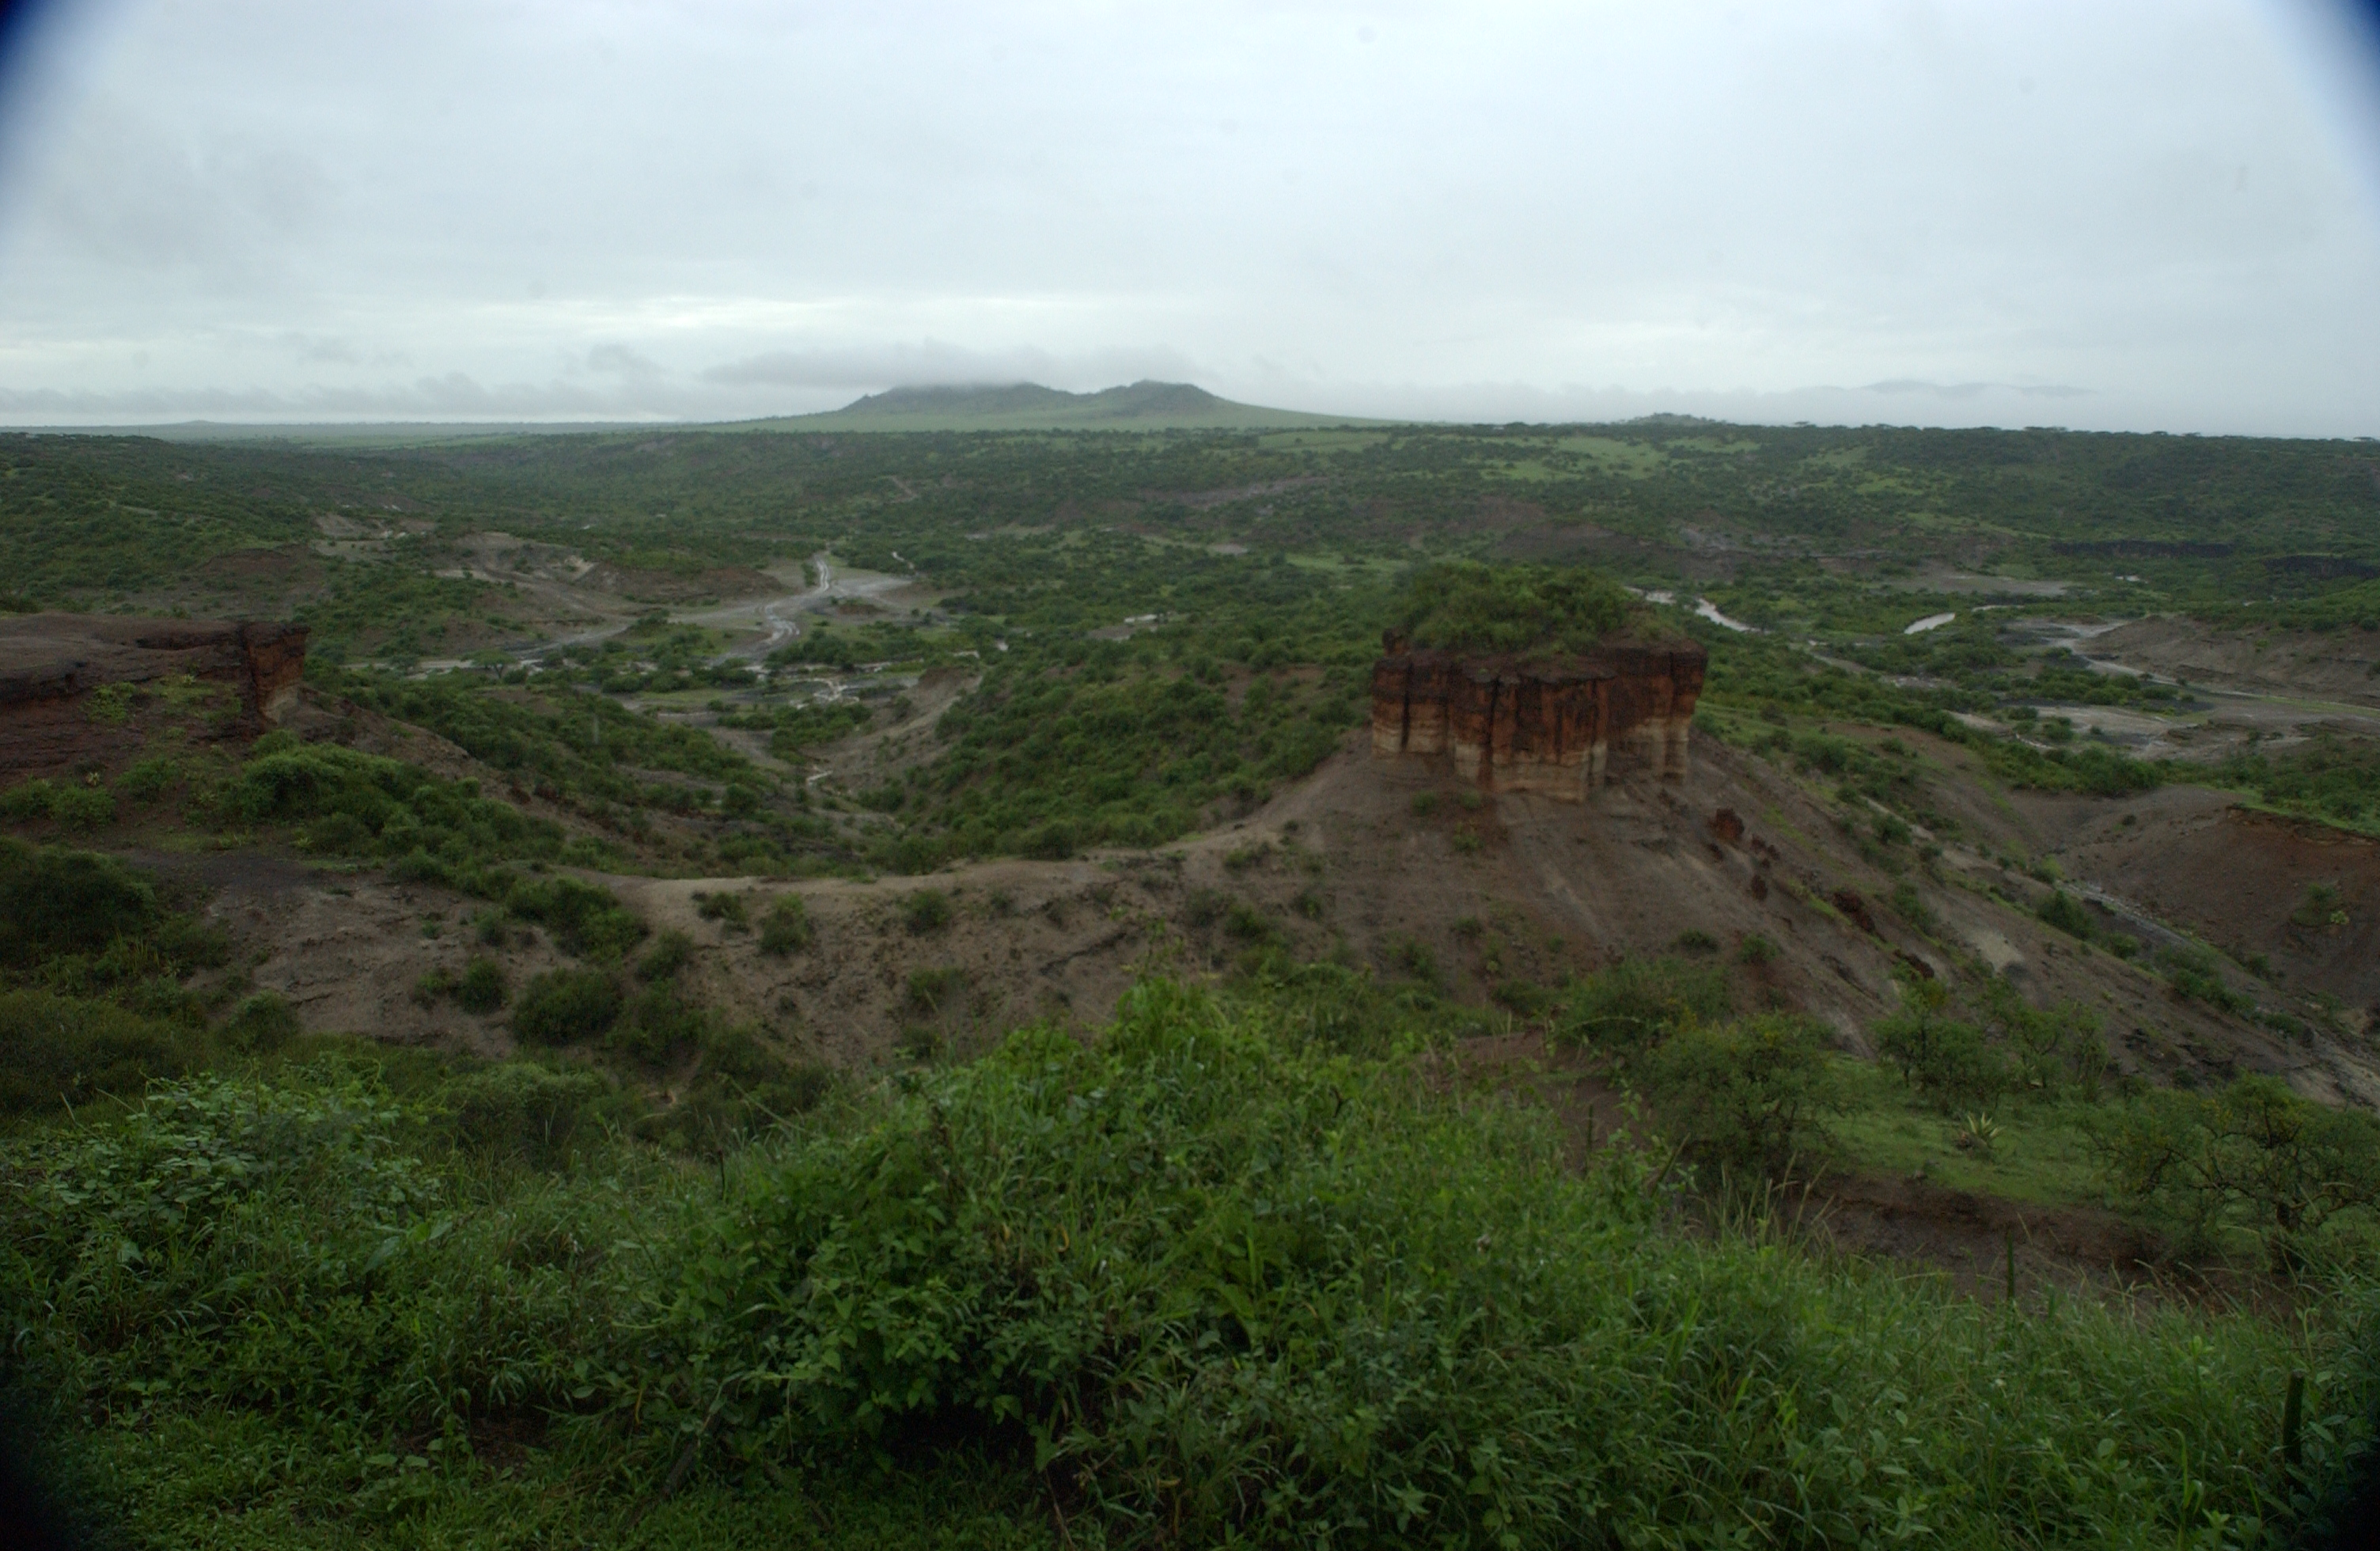 From the rim, Olduvai Gorge, scene of many major discoveries related to the origins of mankind, including the 3.6 million-year-old Laetoli fossilized footprints.  Ngorongoro Conservation Area, Tanzania, Africa.  December 2006.